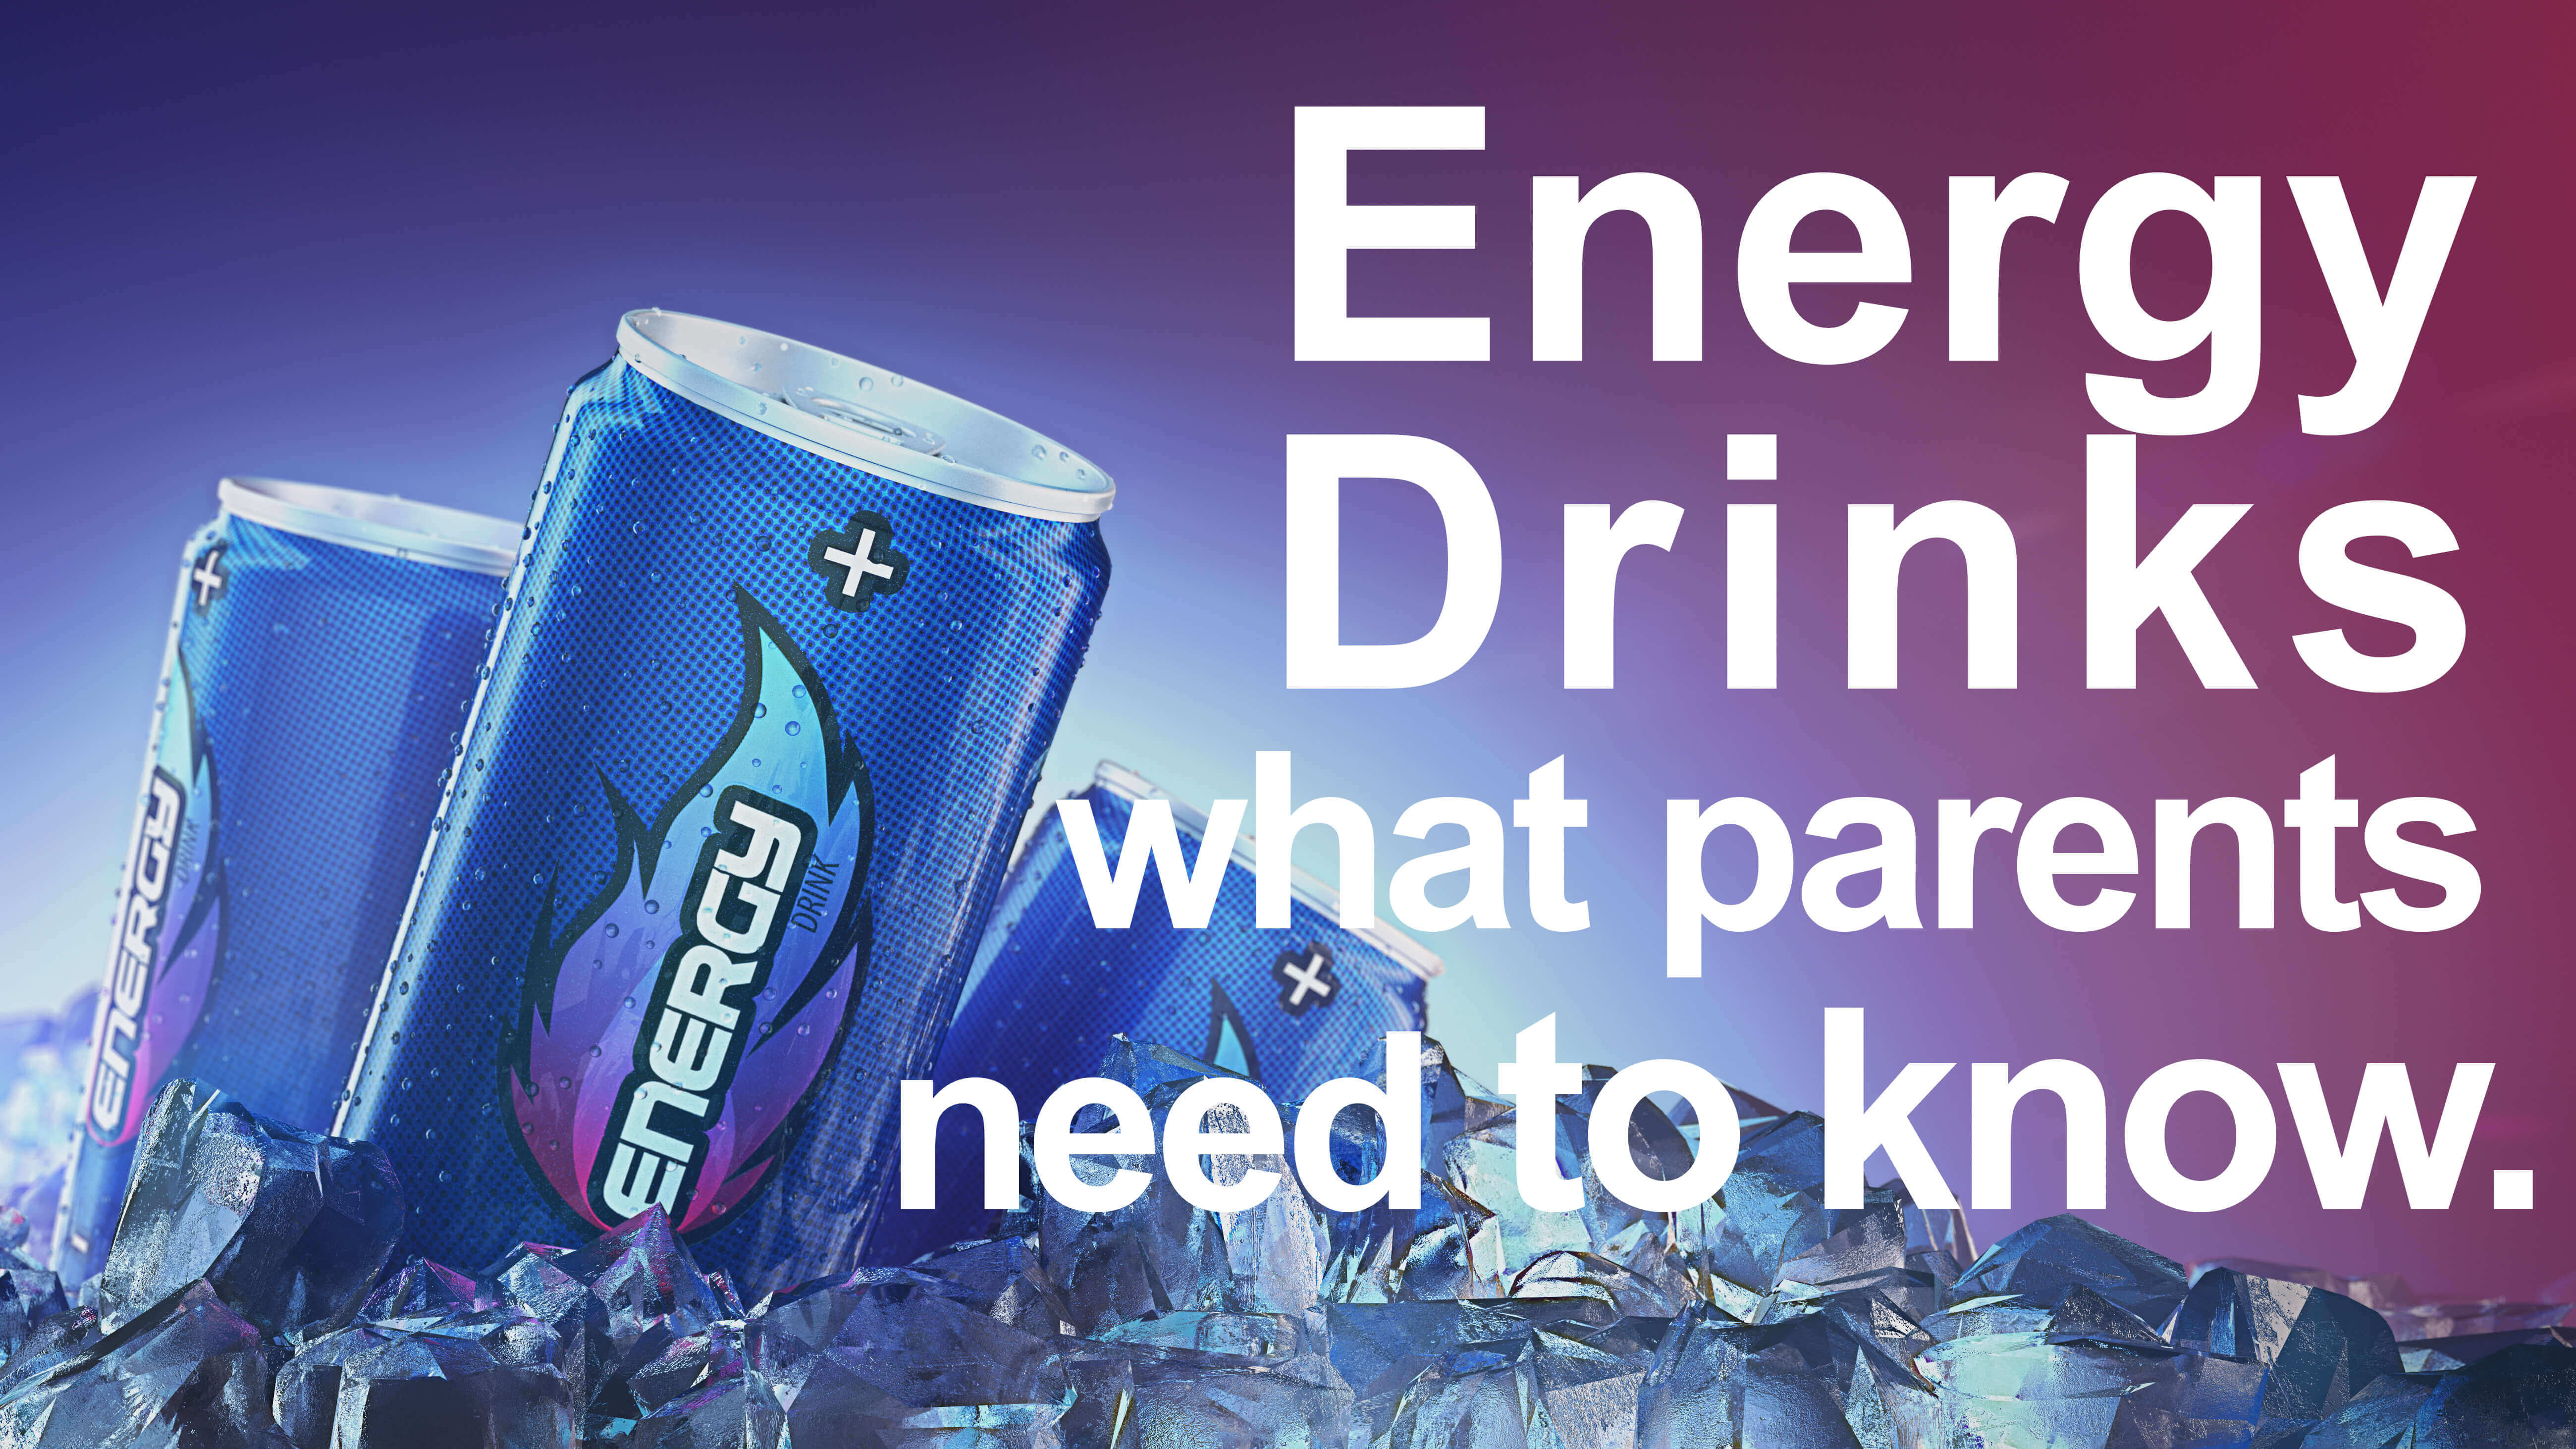 Energy Drinks Linked To Adhd Behaviors >> Energy Drinks What Parents Need To Know Knippenberg Patterson